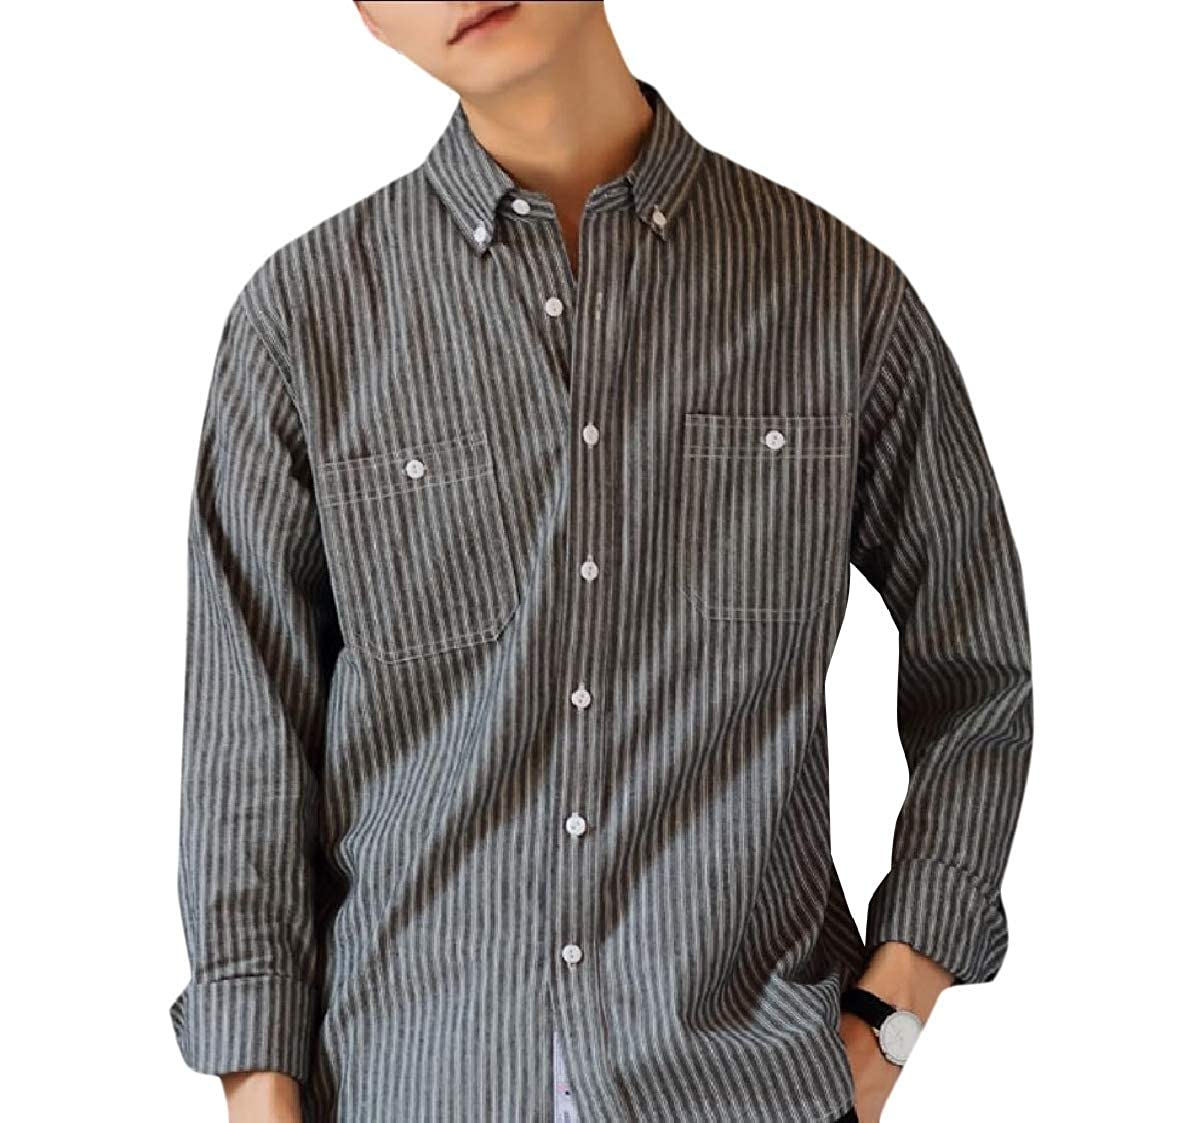 Coolred-Men Stripes Slim Fit Premium Select Cotton Non-Iron Western Shirt